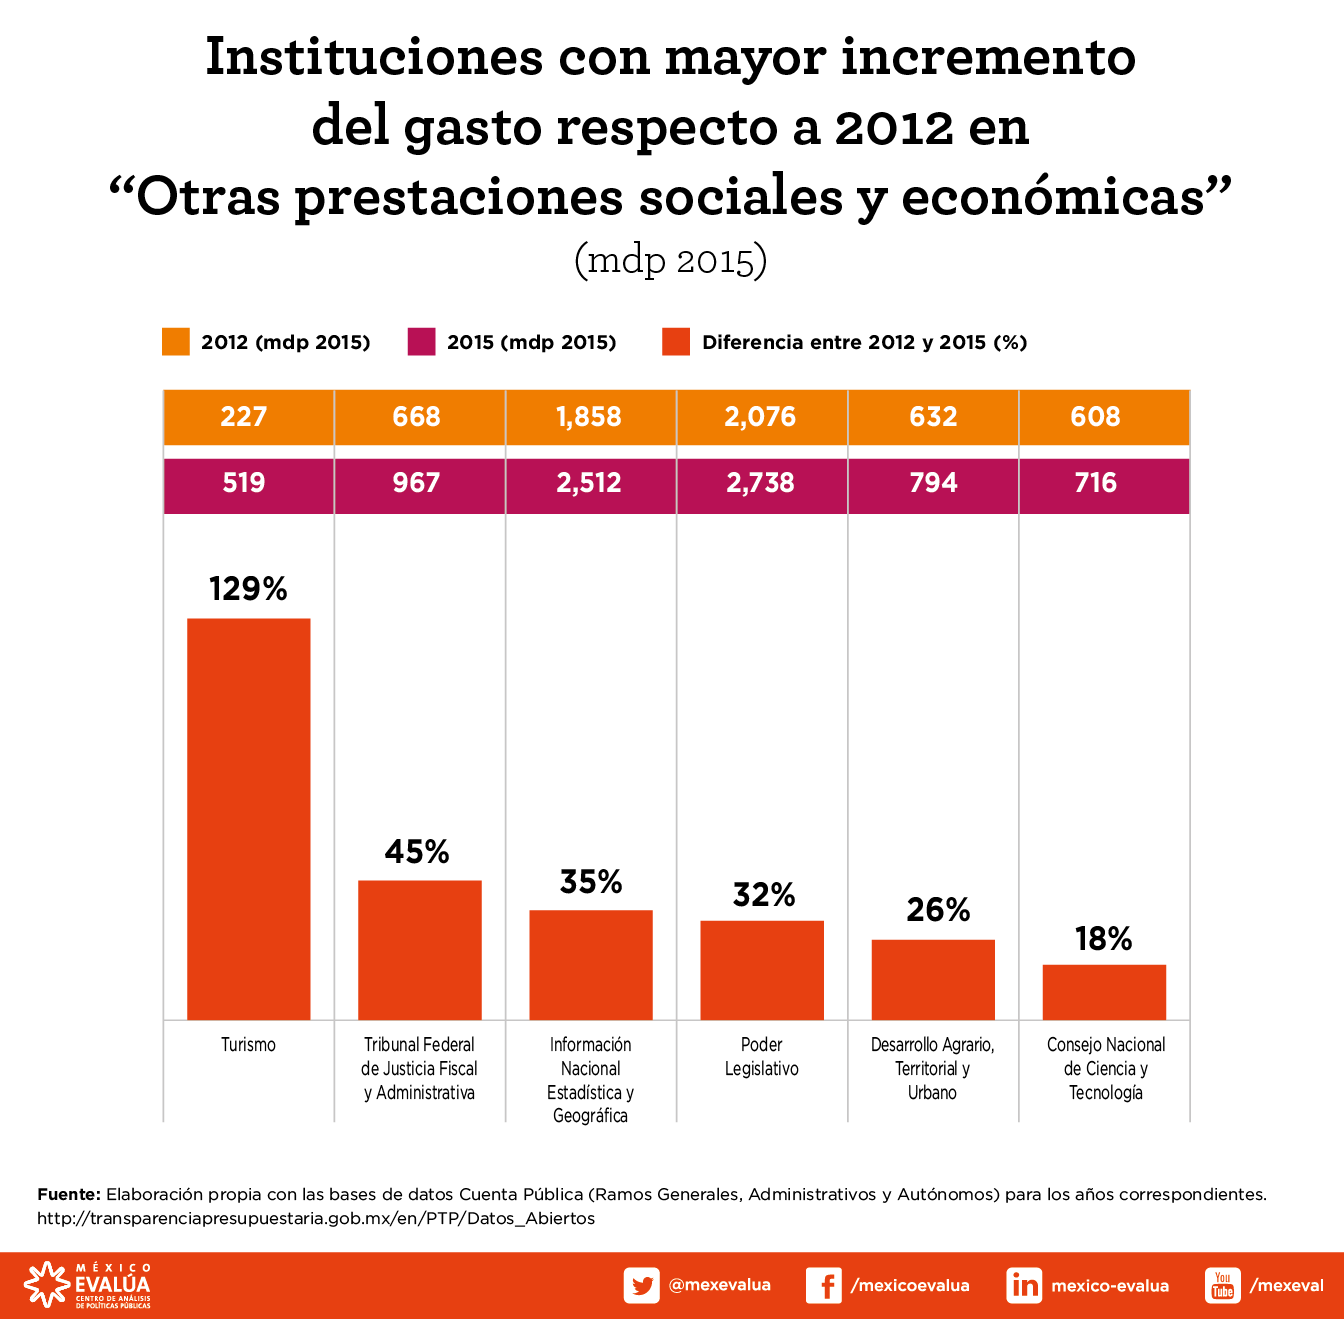 instituciones-con-mayor-incremento-del-gasto-2012